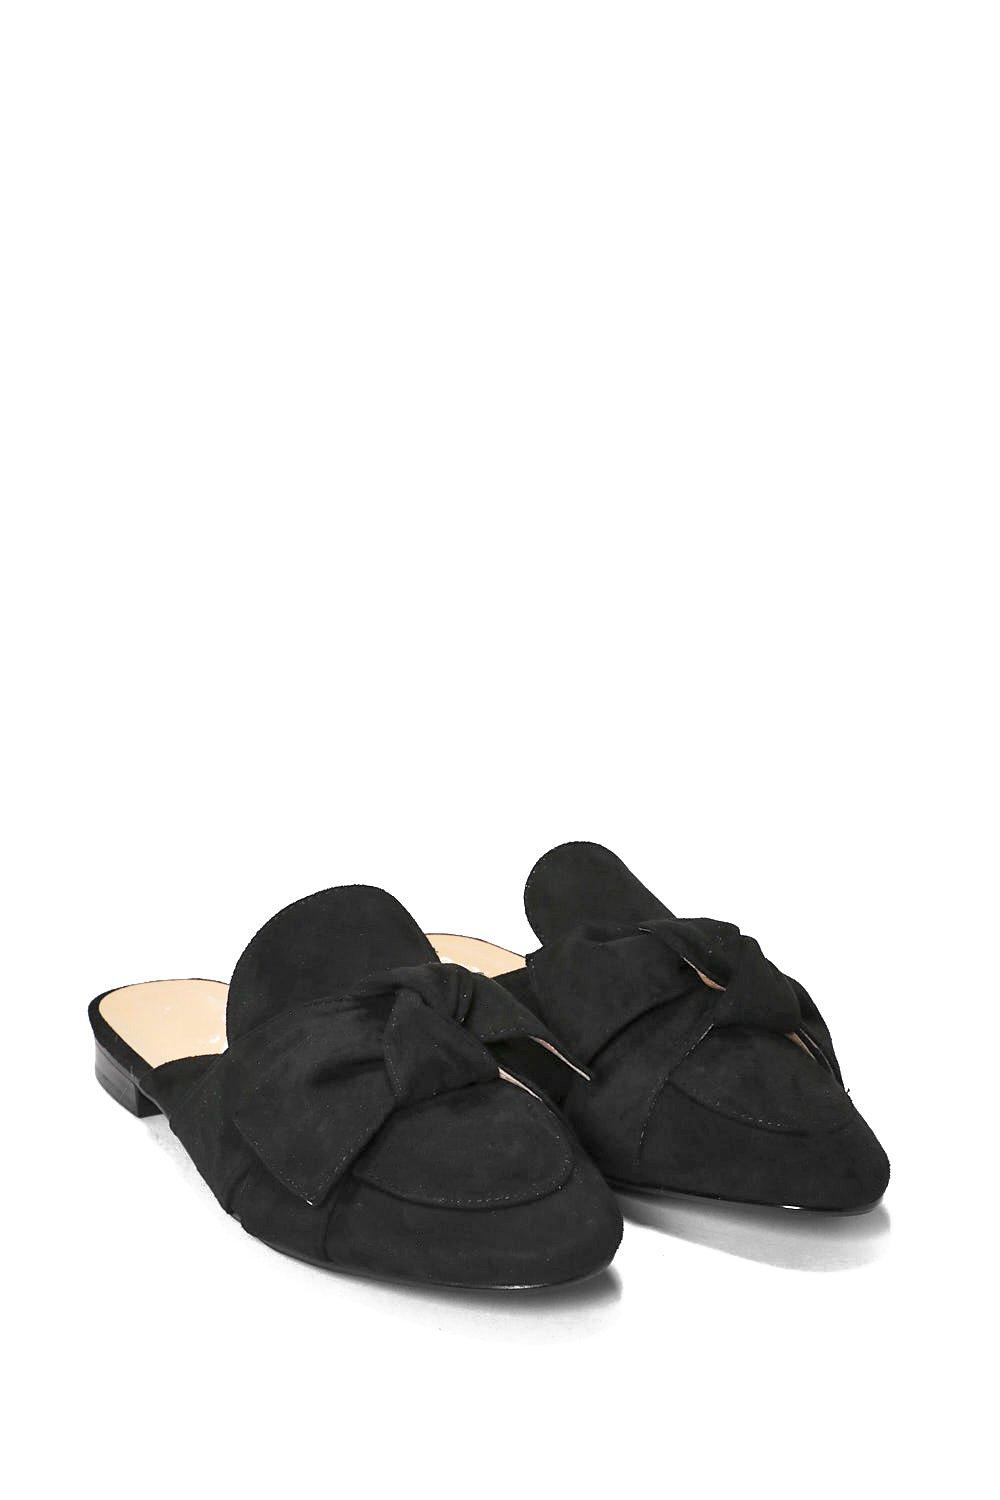 VMBOW - Mules - black For Sale Online Cheap Quality Cheap Best Seller Buy Authentic Online zE0pqsZ9X